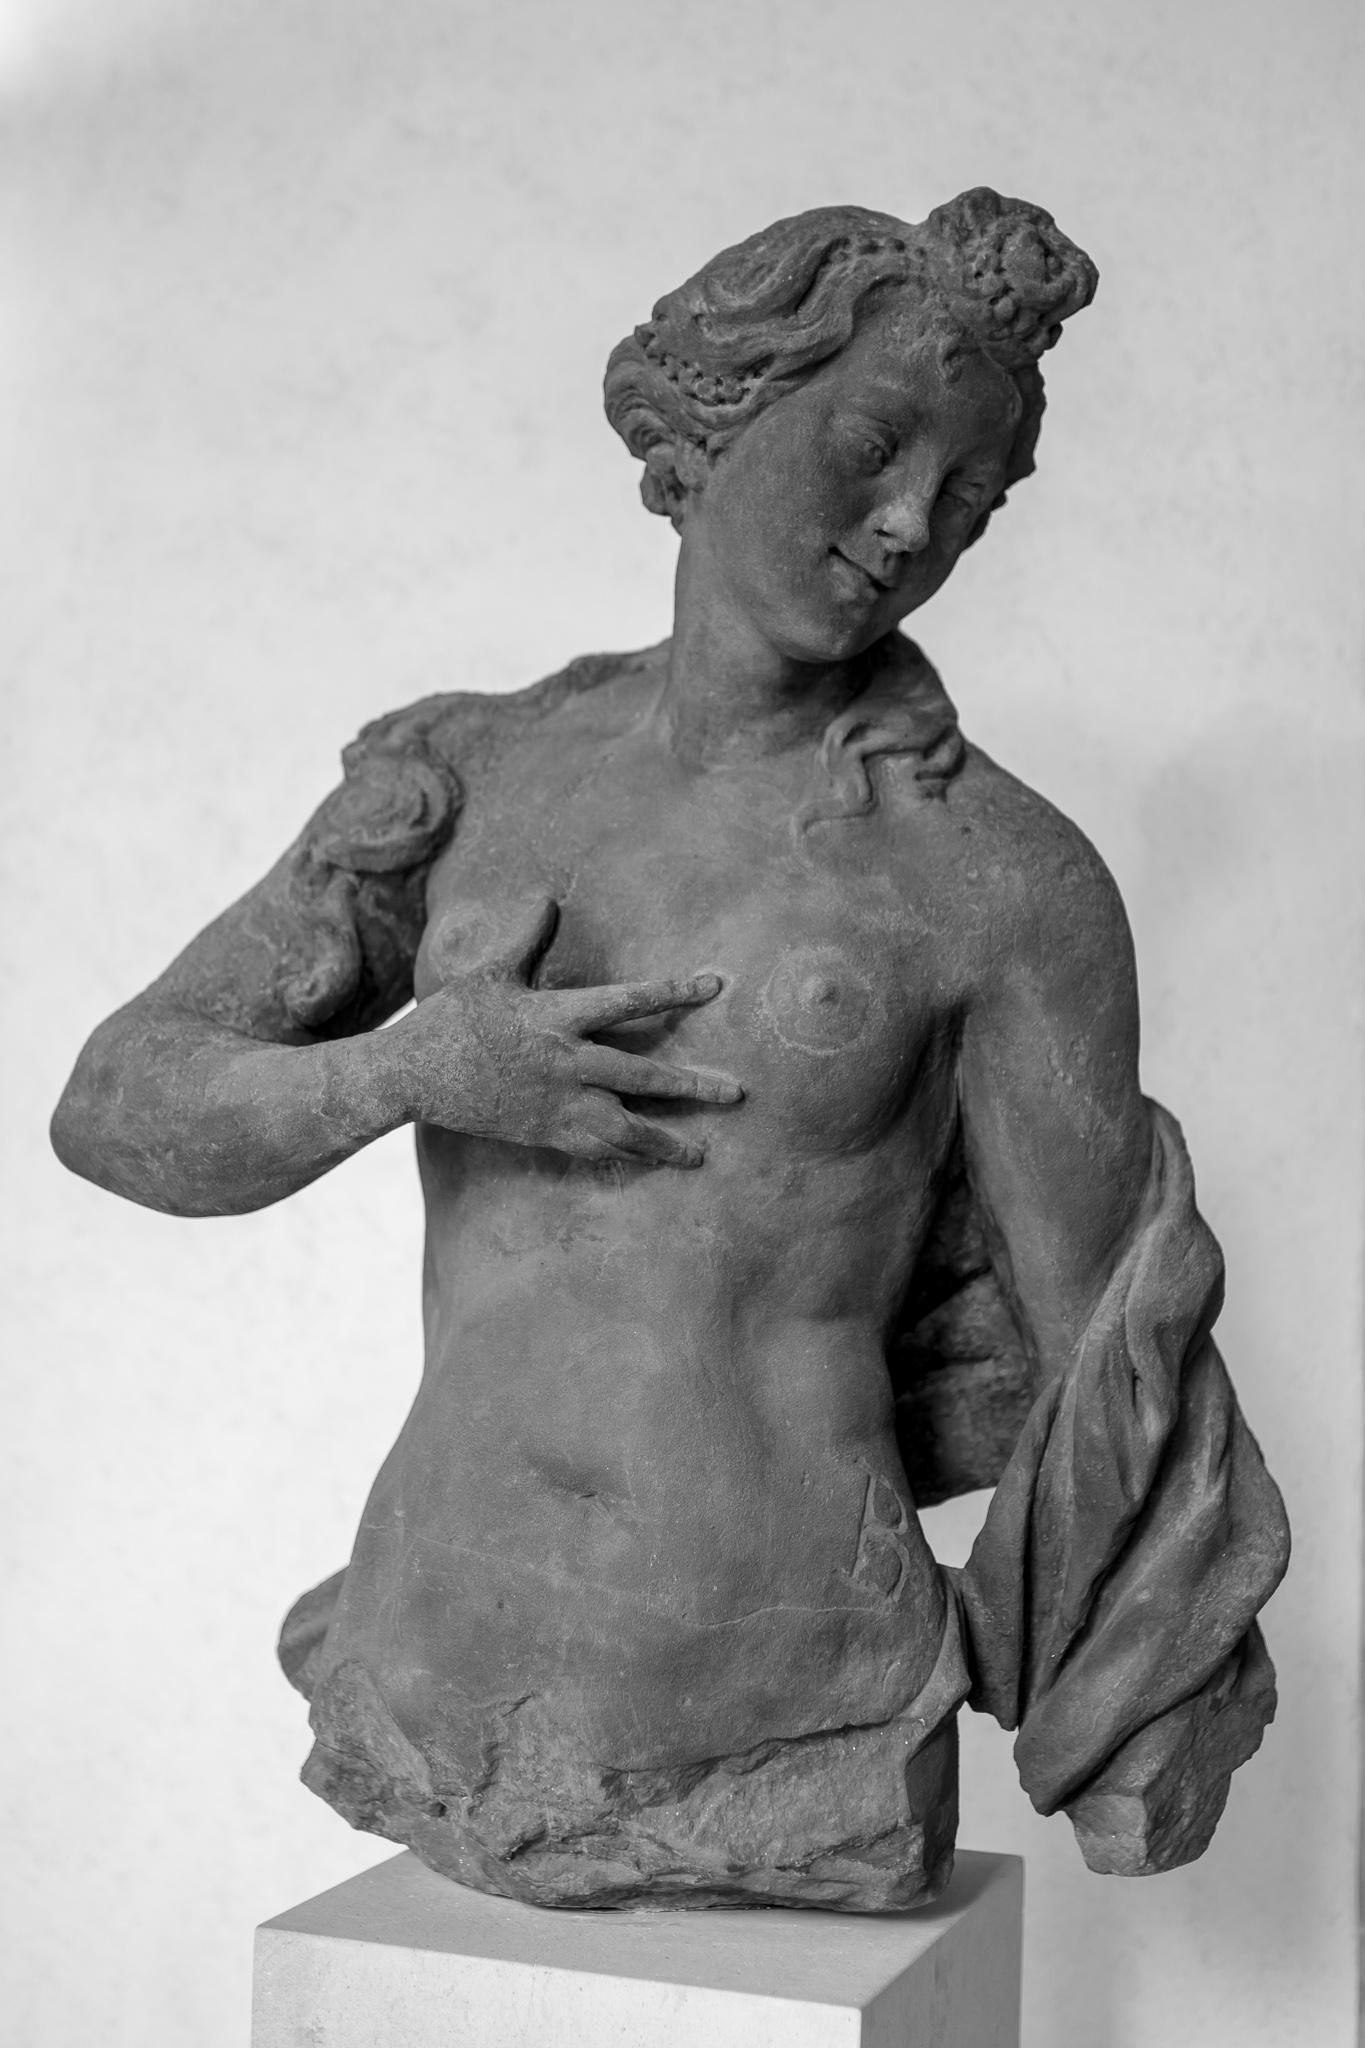 Matthias Braun was one of the most notable baroque sculptors of Prague and Bohemia.<br> This work is in the collection of the Schwarzenberg Palace, in Prague, and is part of the National Gallery.